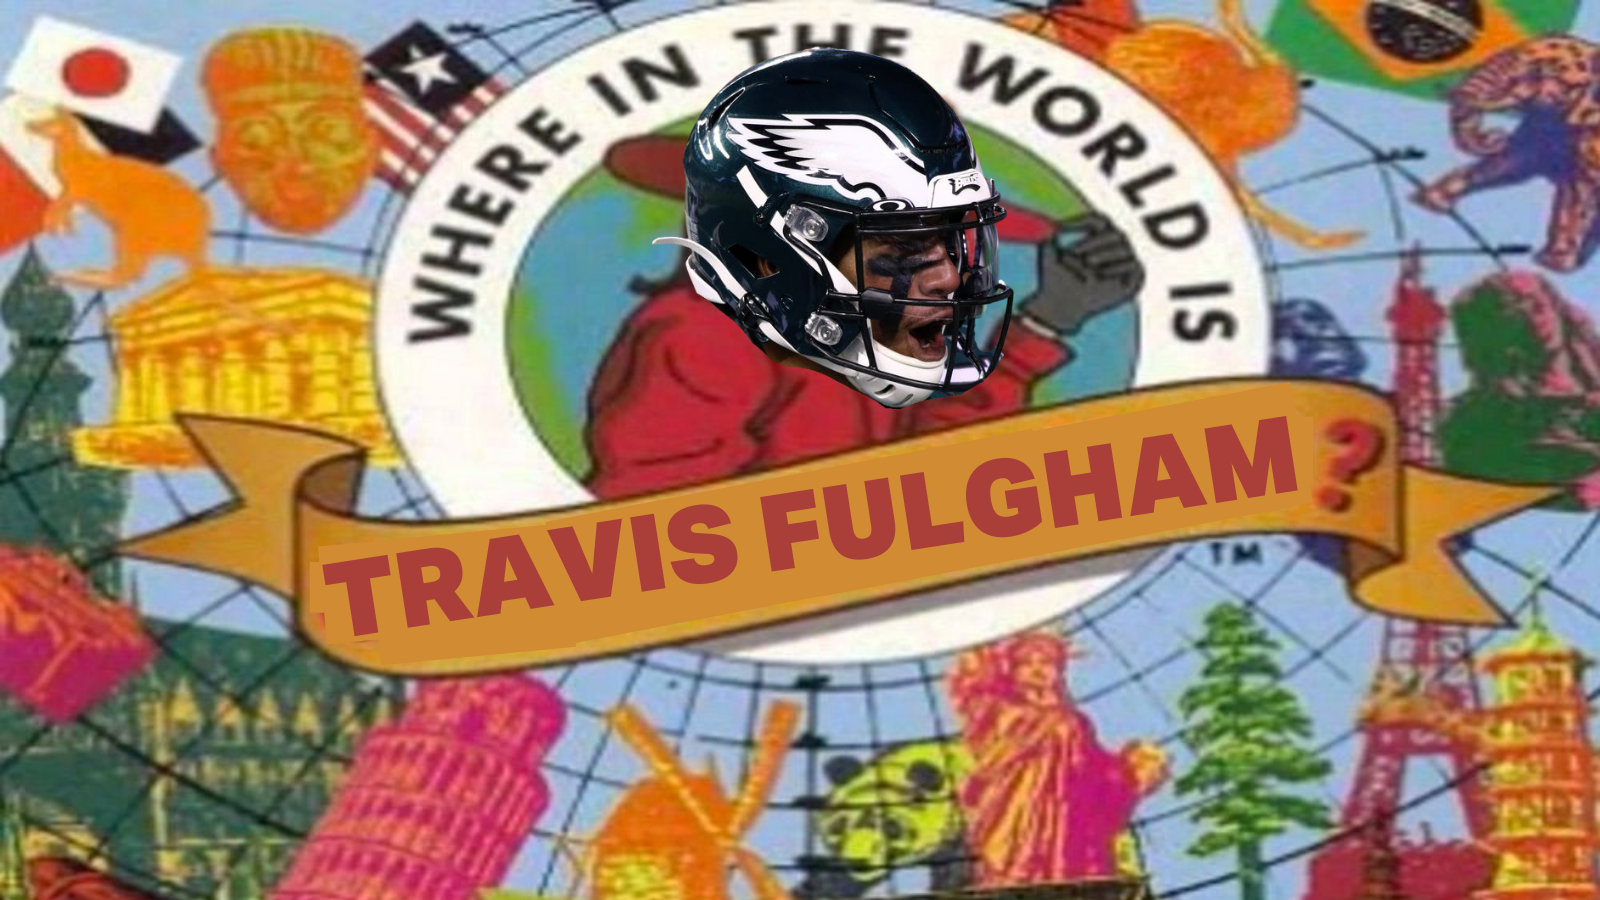 Where in the World is Travis Fulgham? – @JamesSantore